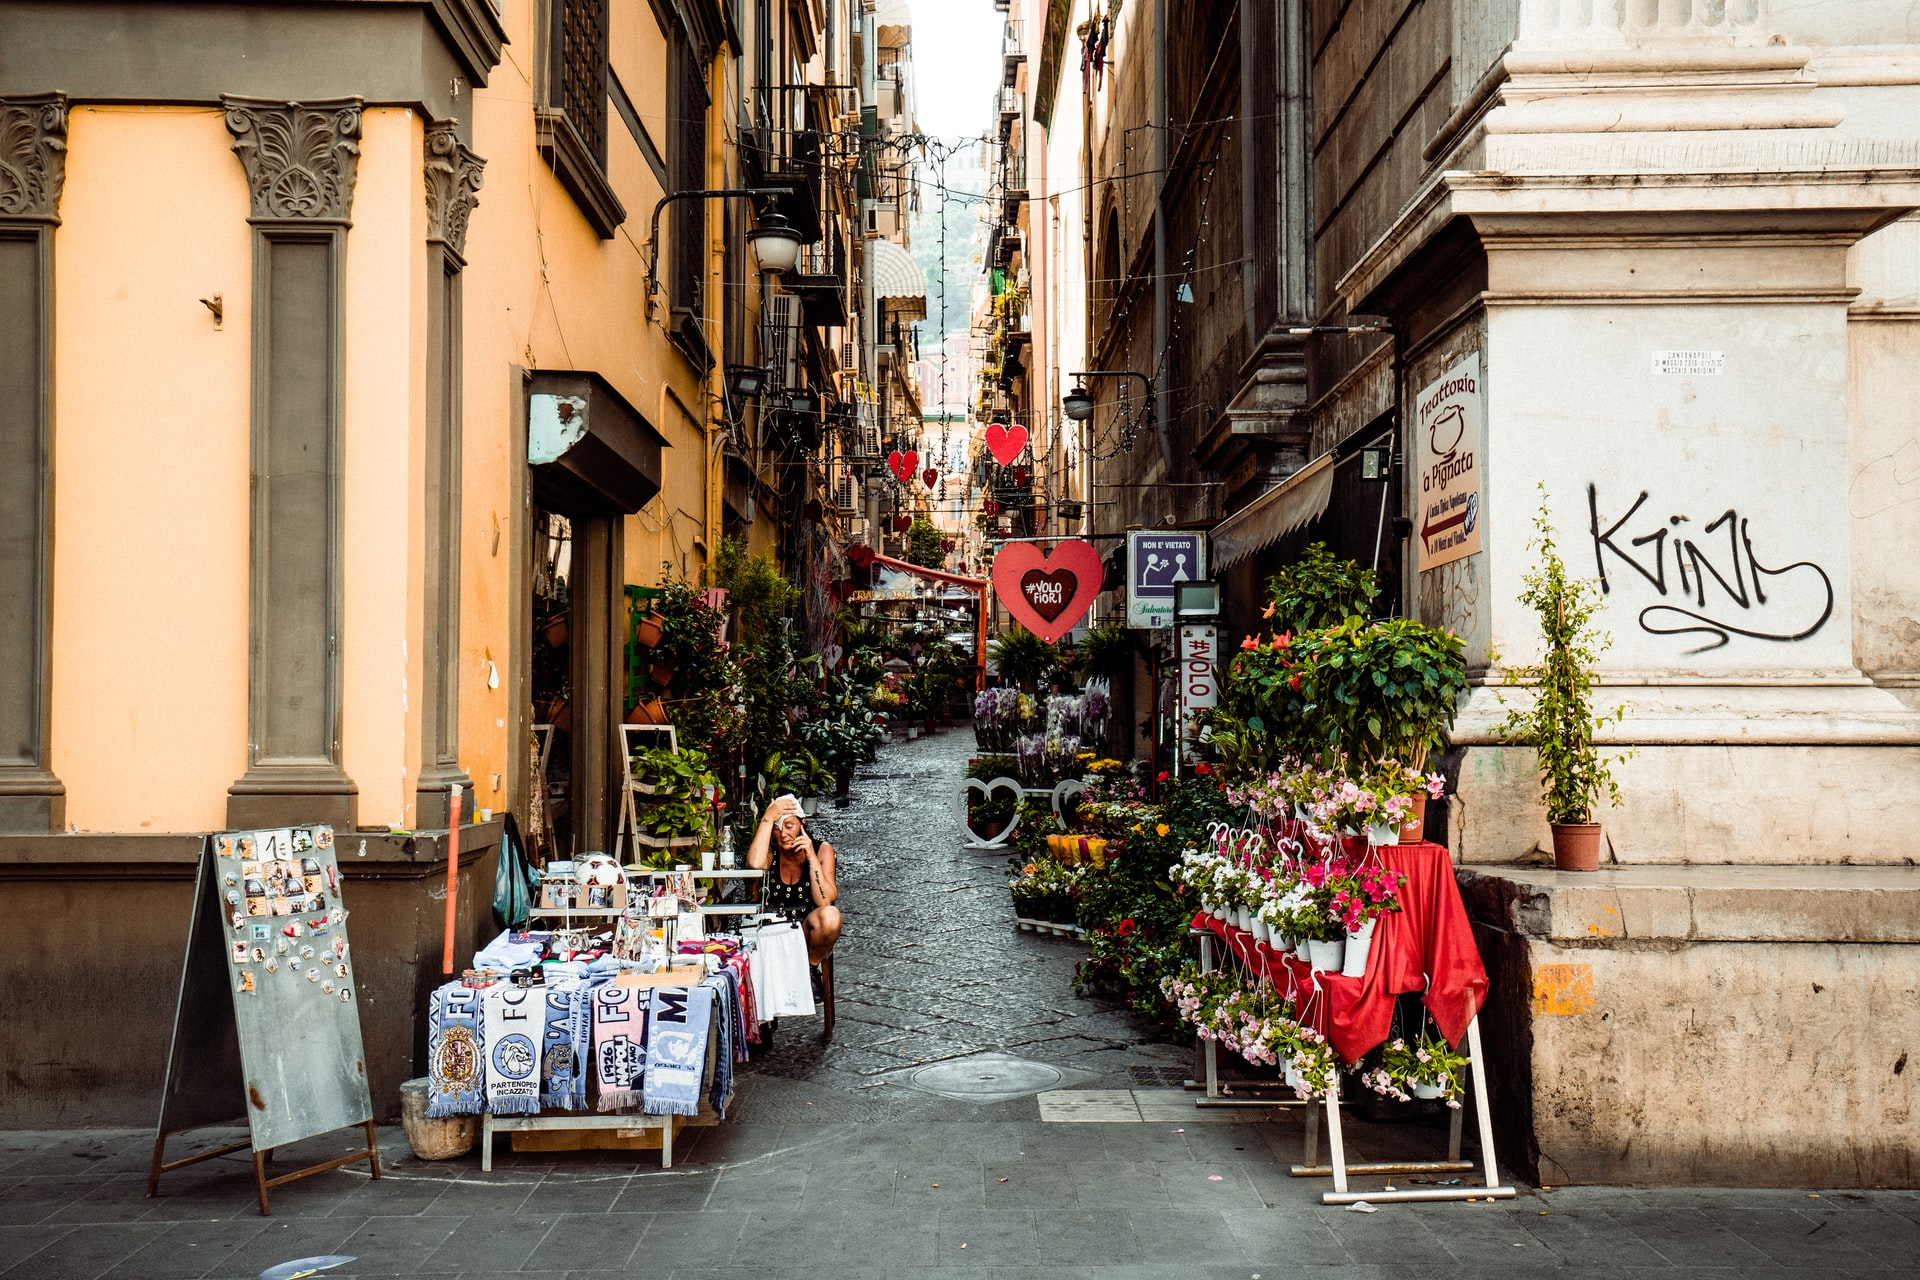 Best Areas to Stay in Naples, Italy